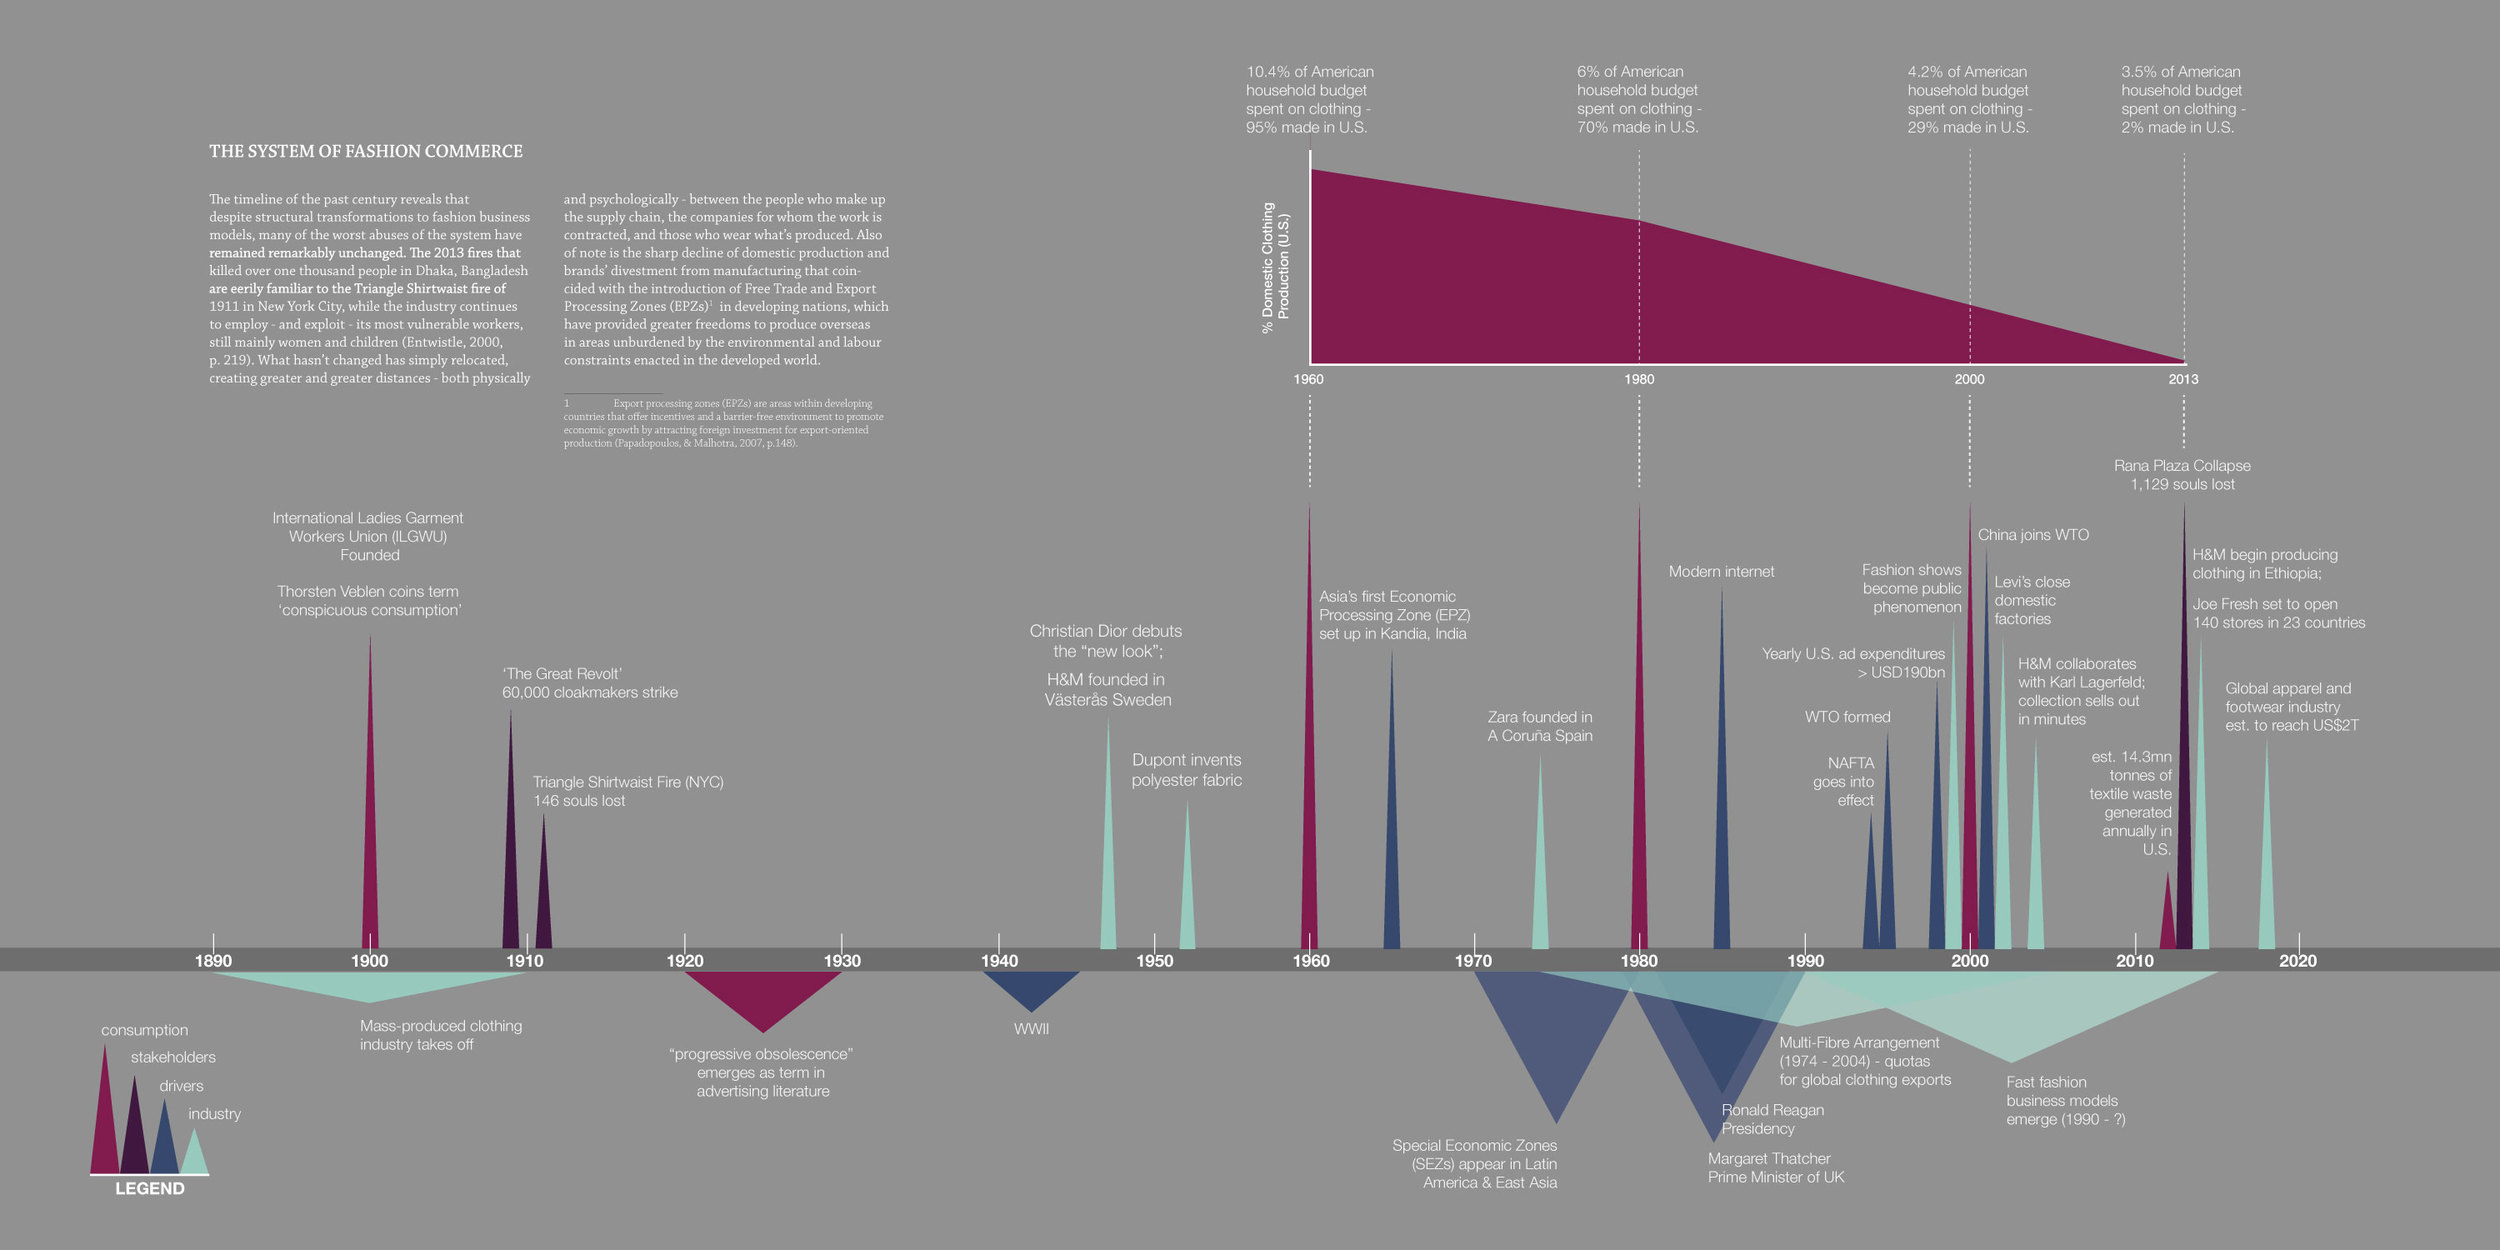 Timeline of the System of Fashion Commerce(Dempsey, 2015)